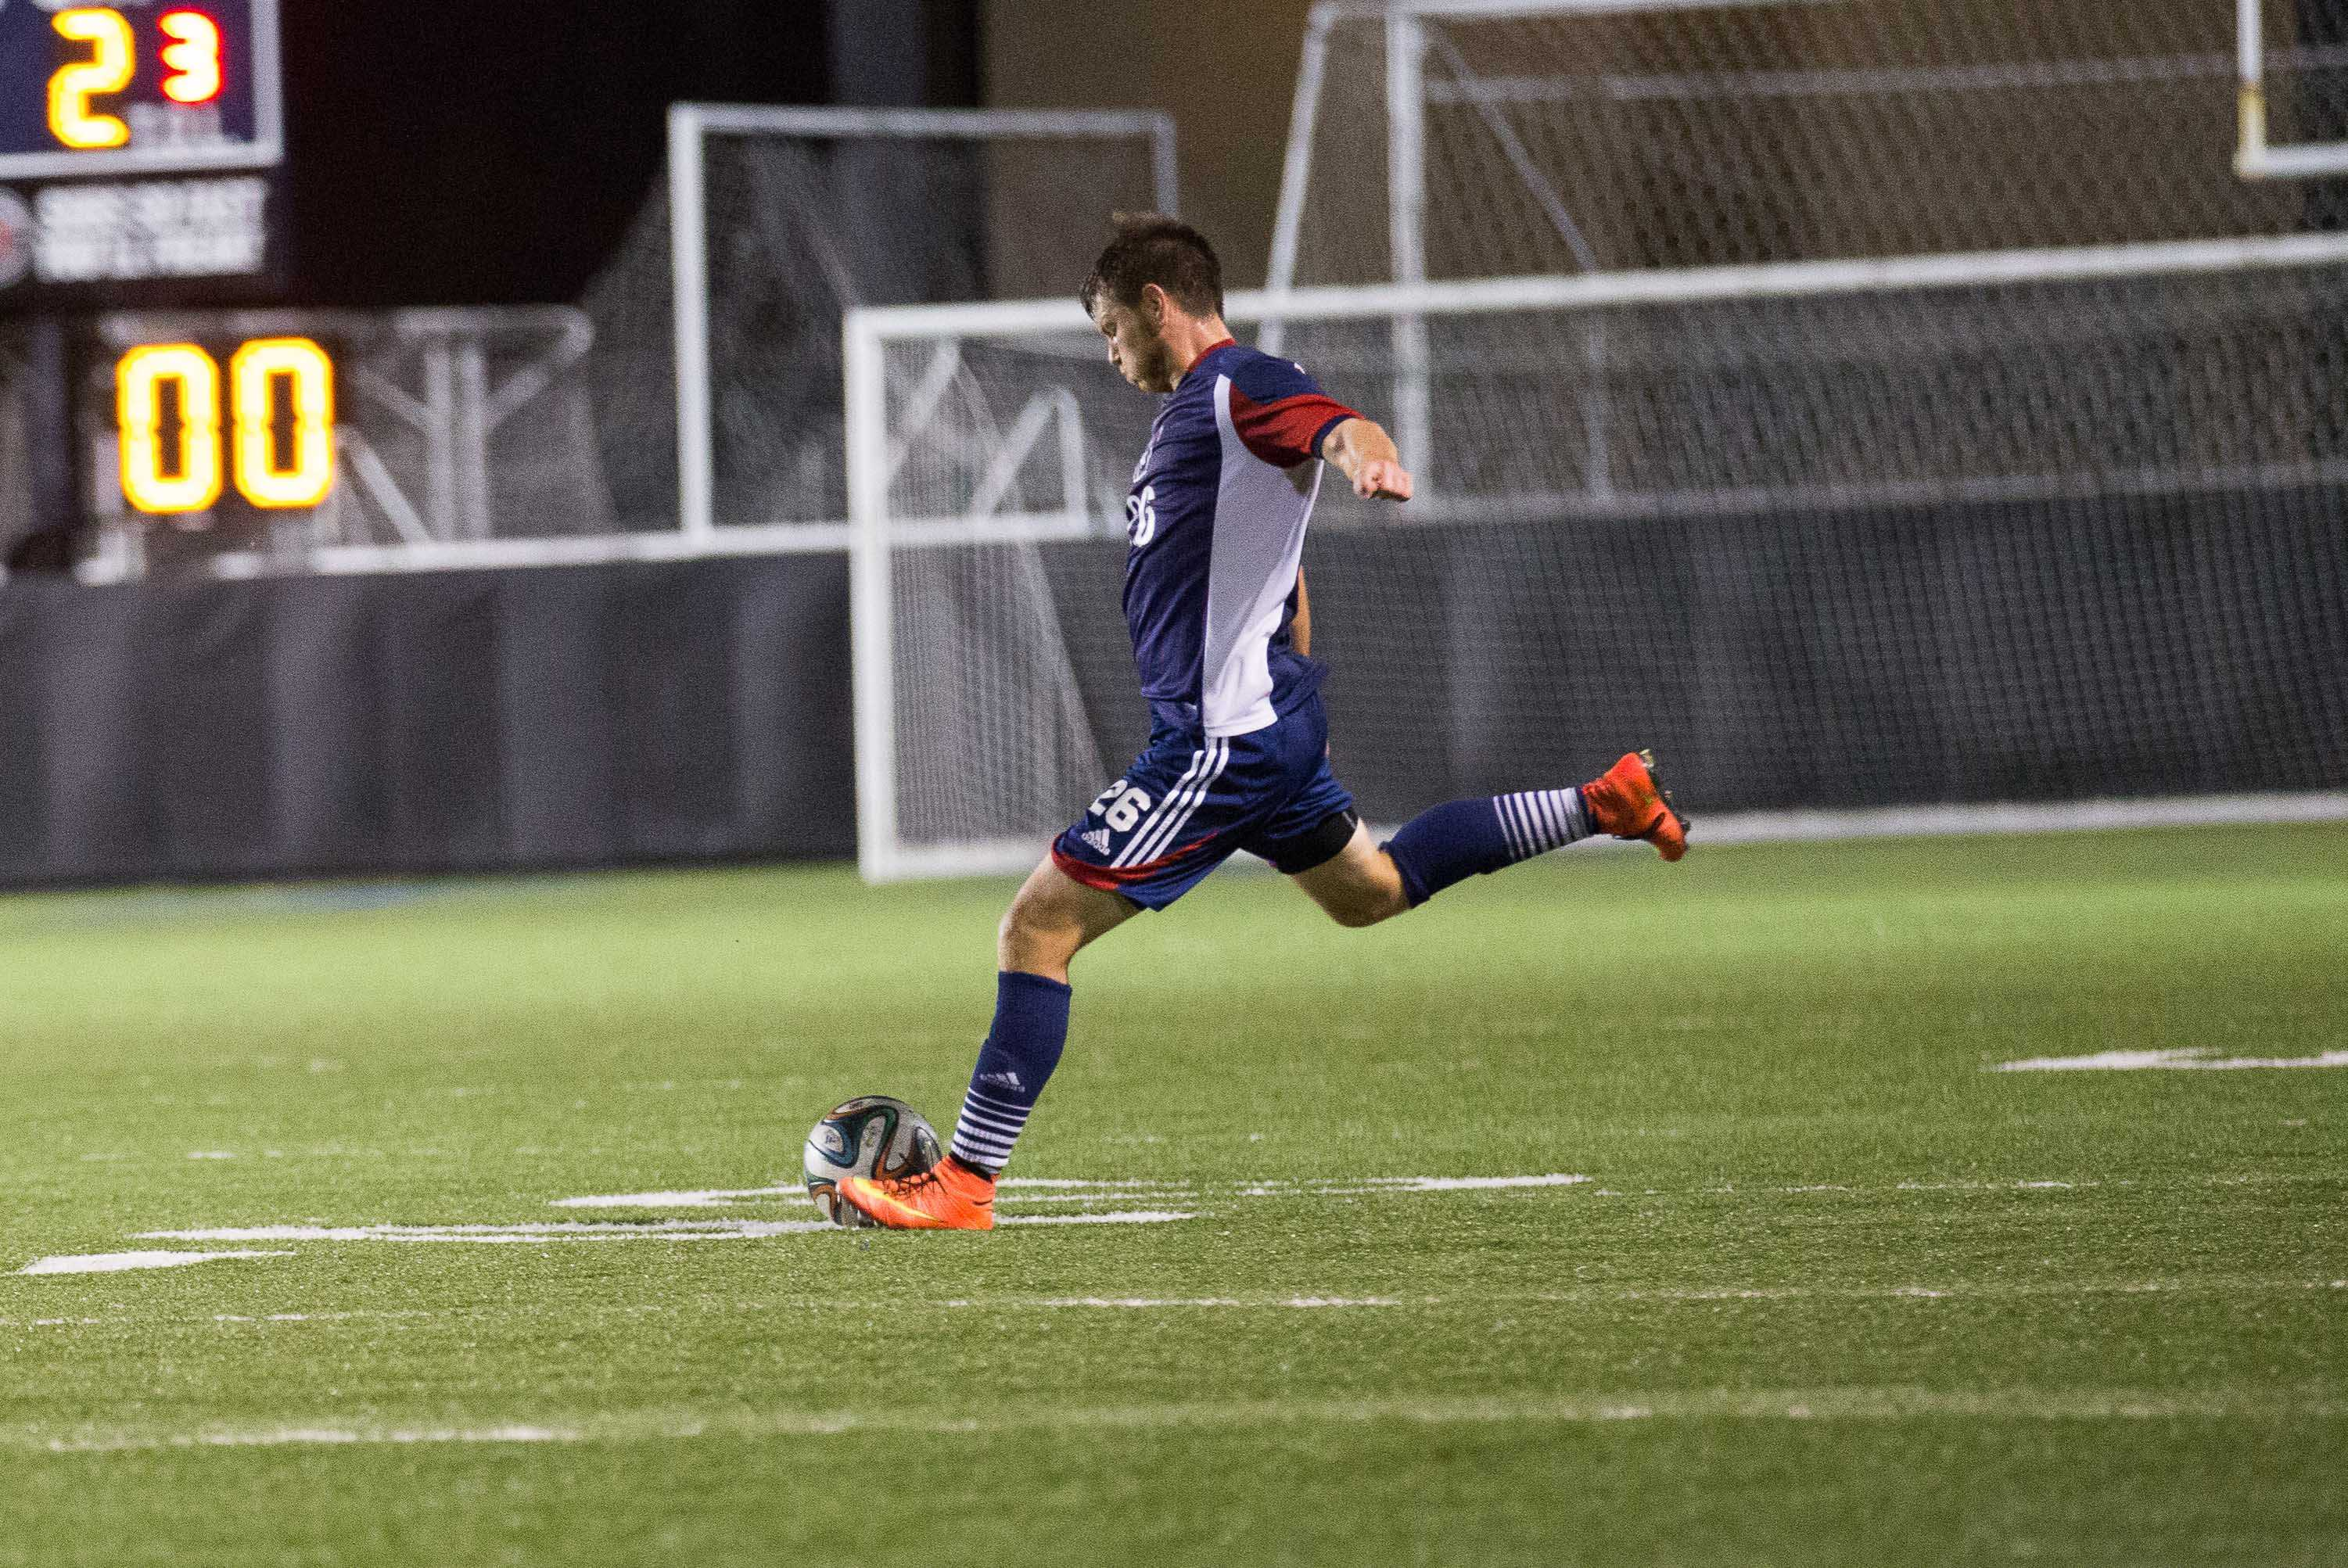 The Colonials fell to 4-5 on the season losing to George Washington Friday.